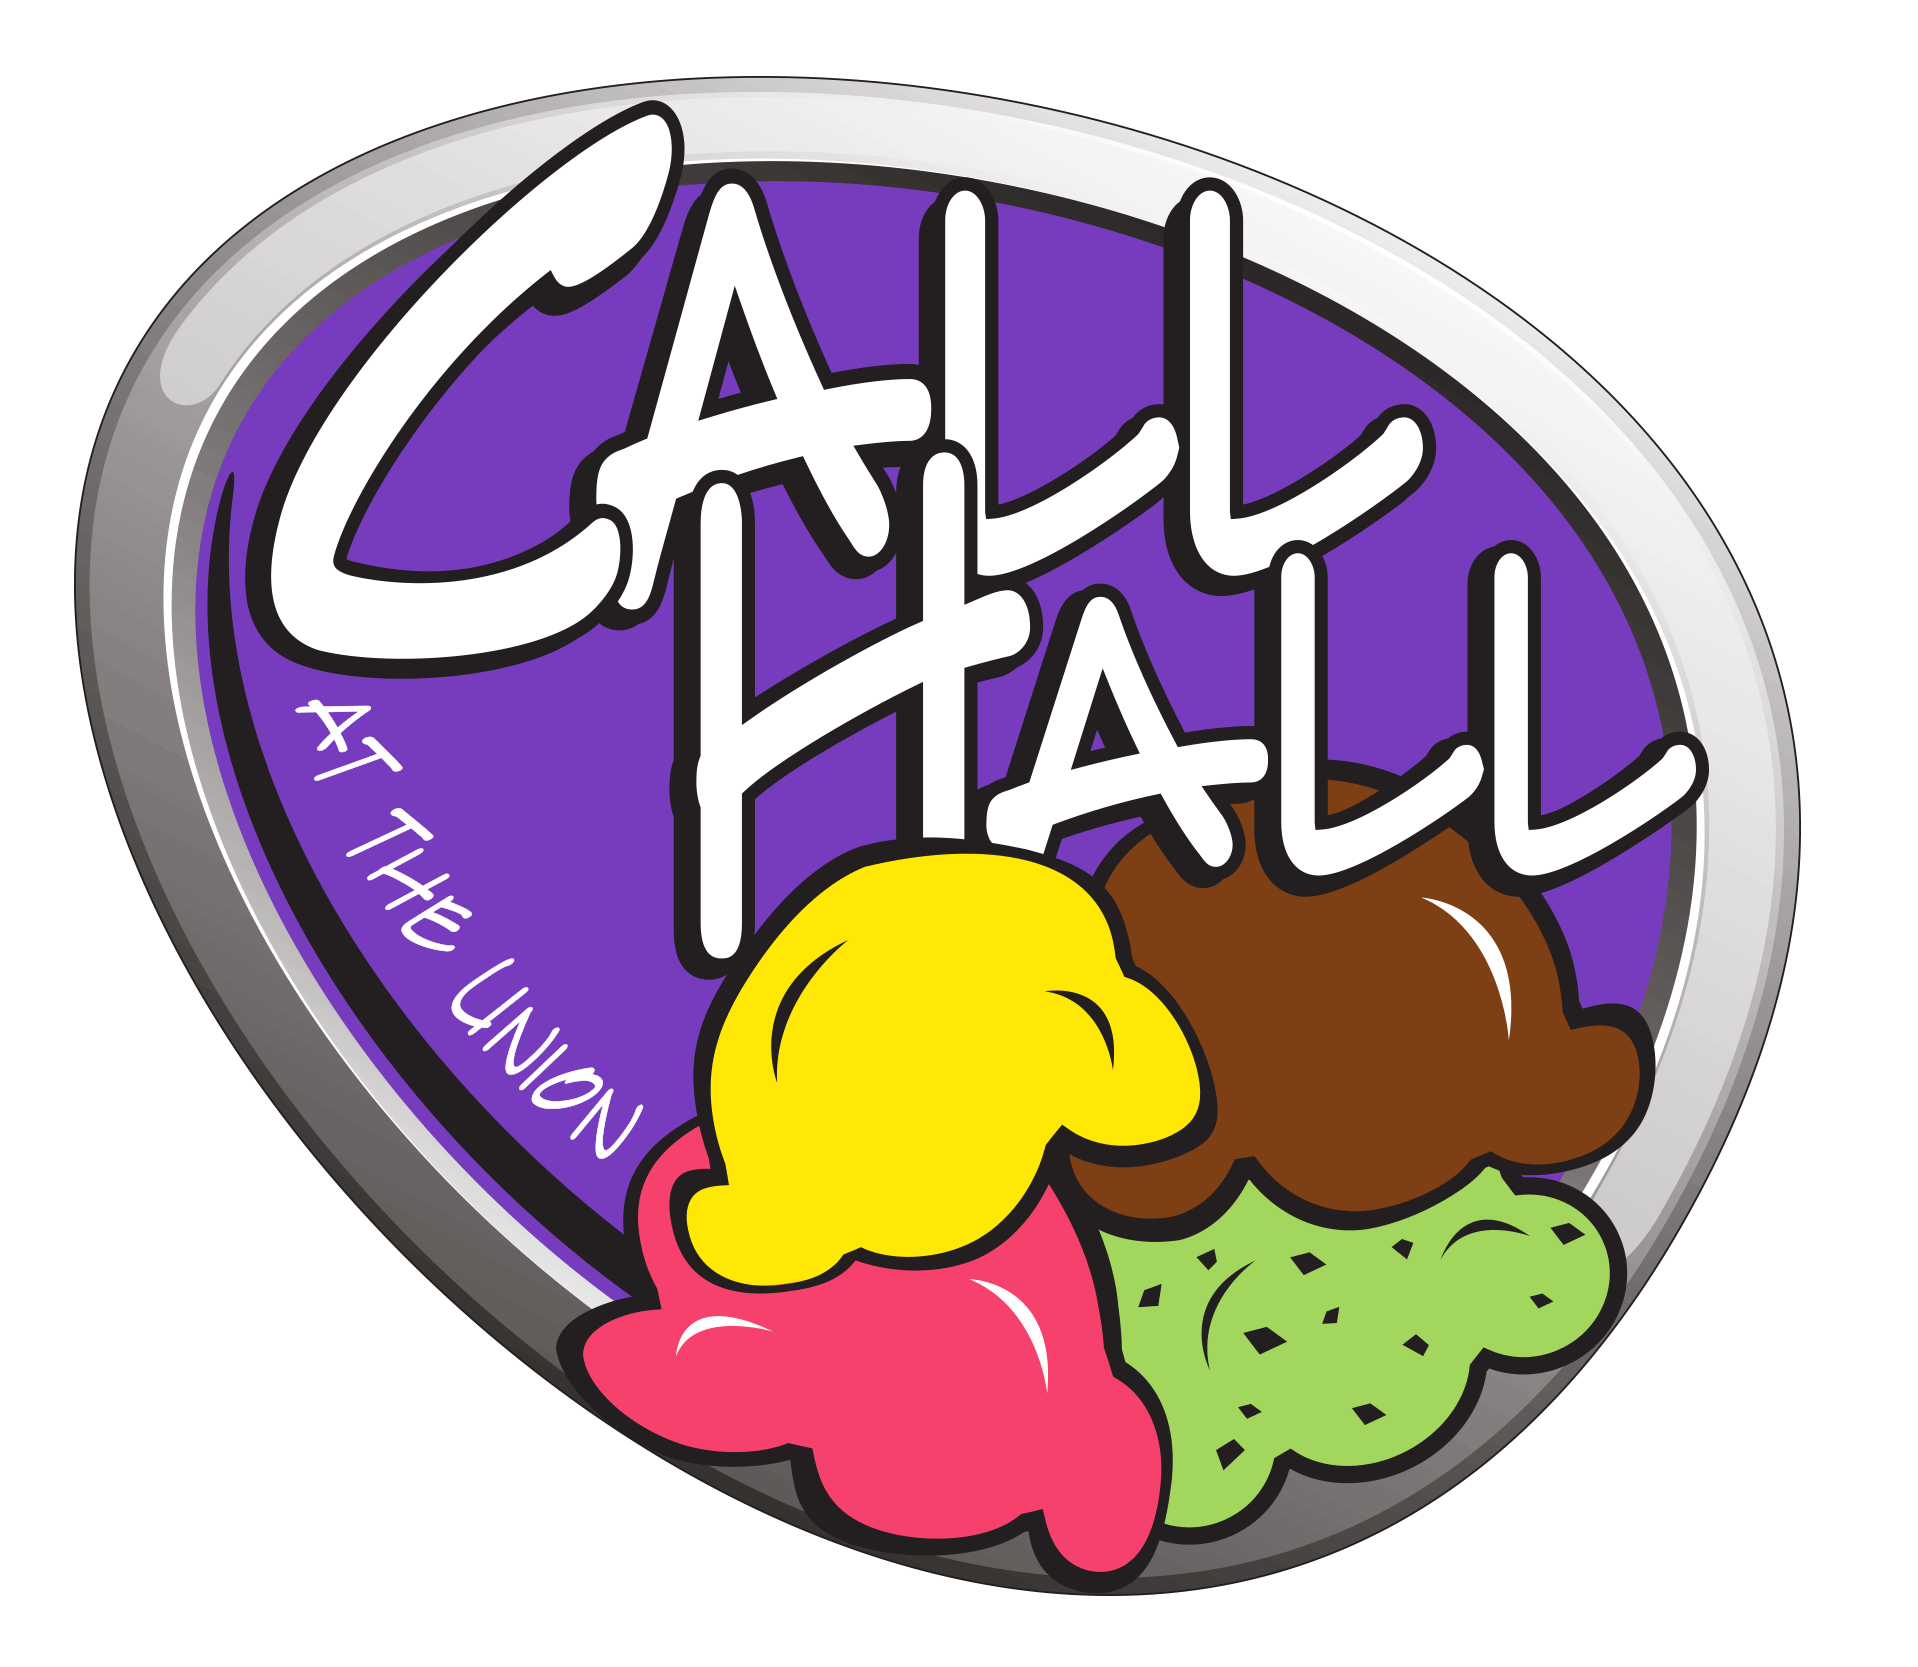 Call Hall at Union